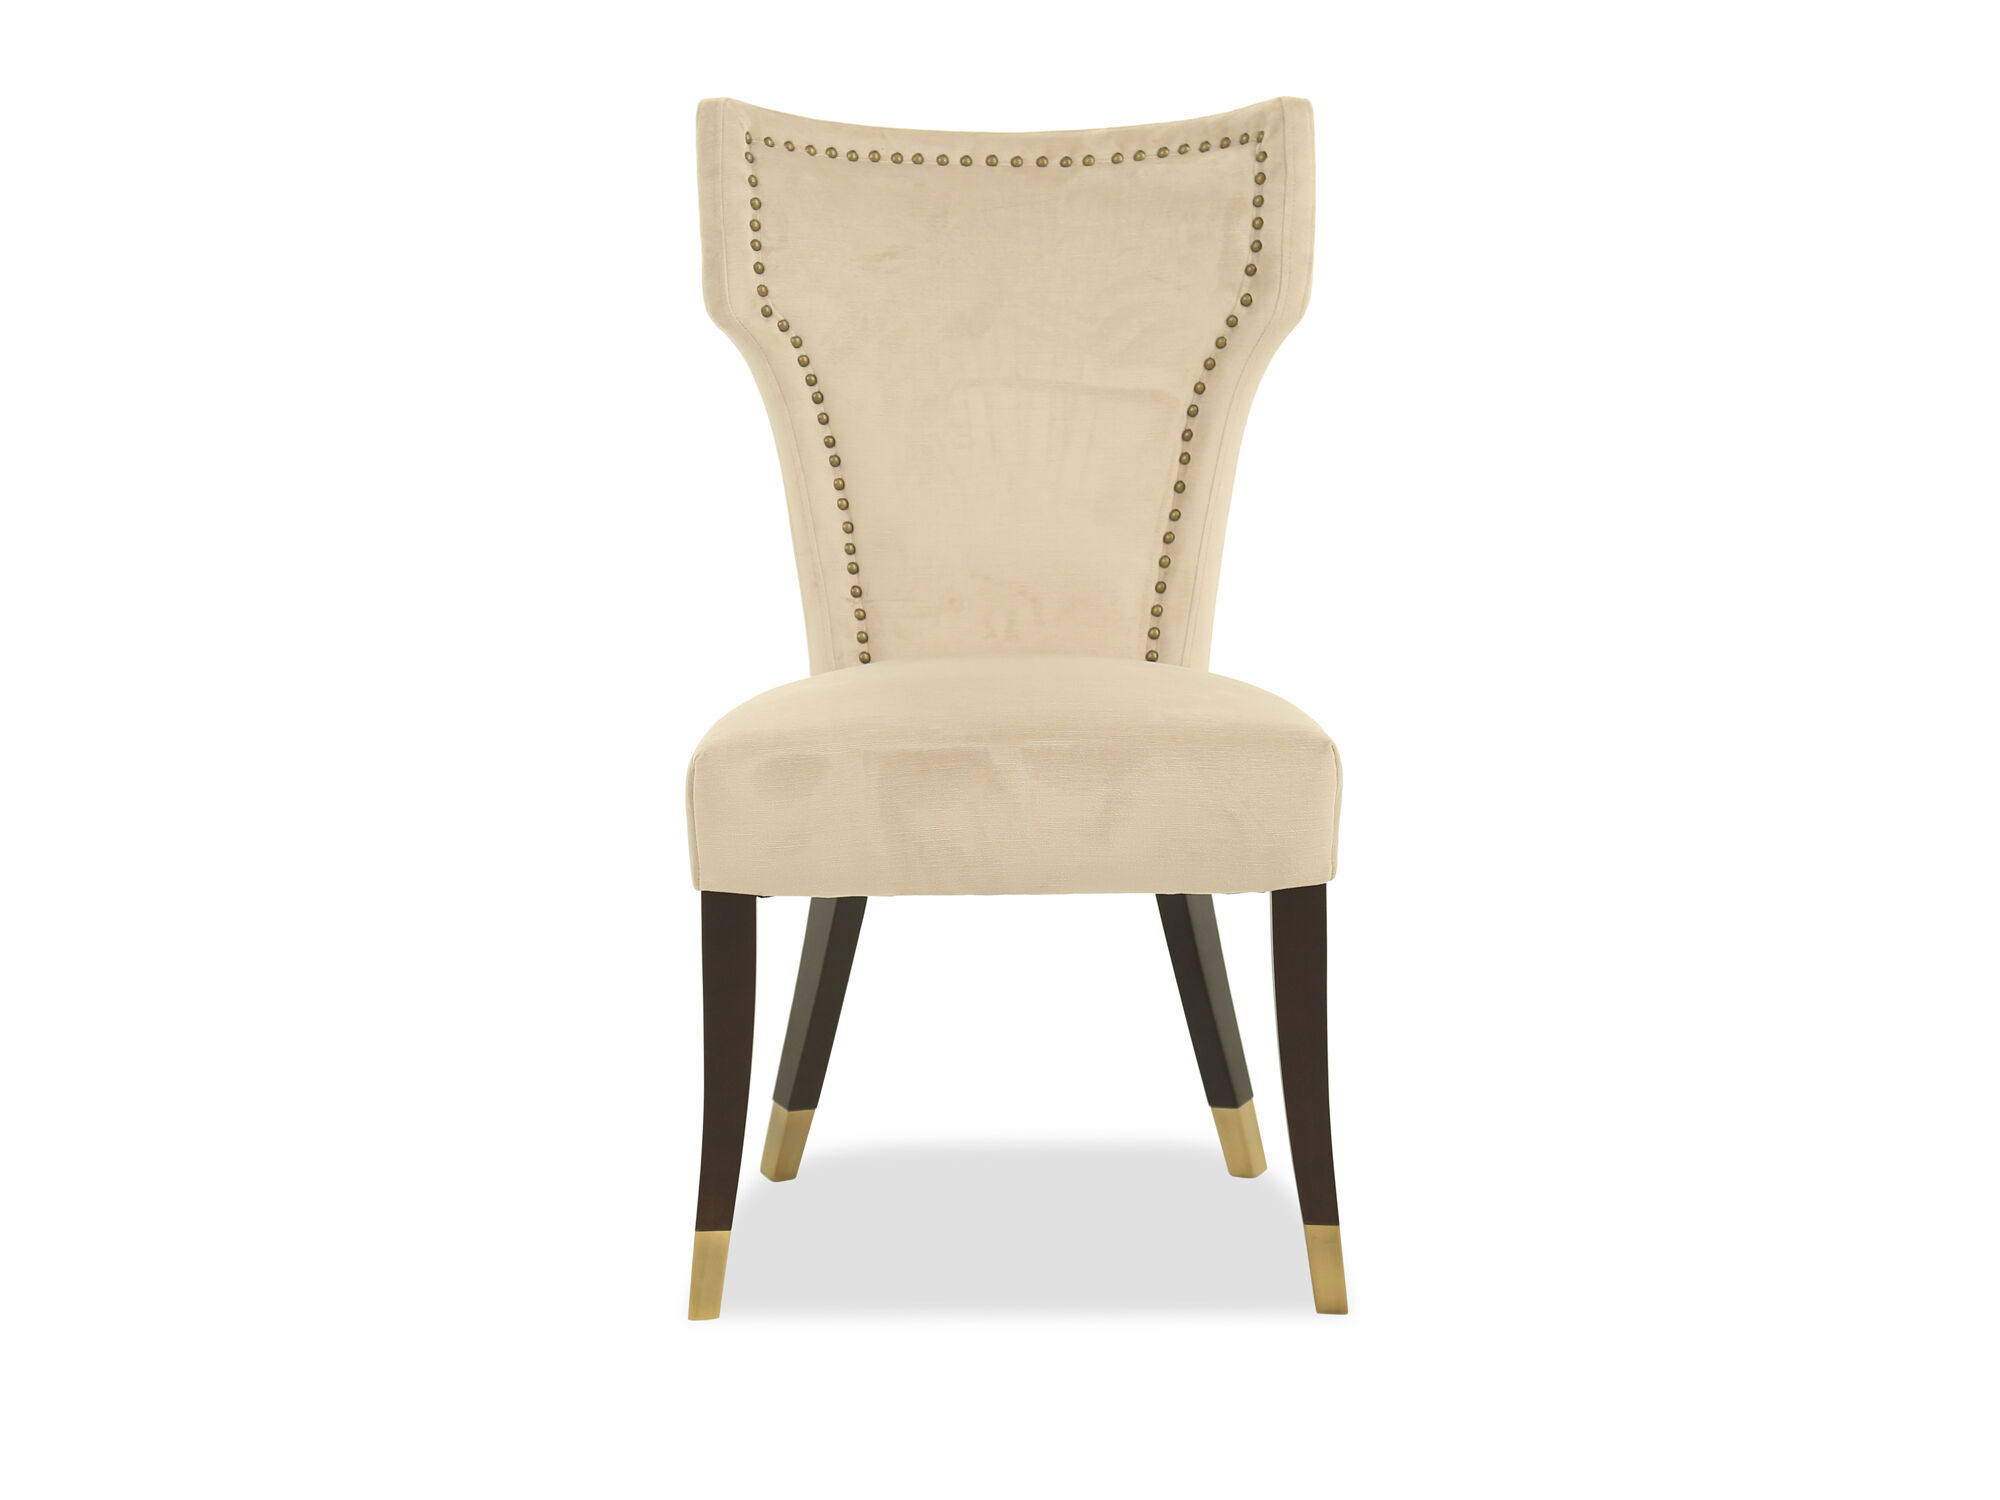 nailhead upholstered dining chair lower back support for office accented 21 quot in beige